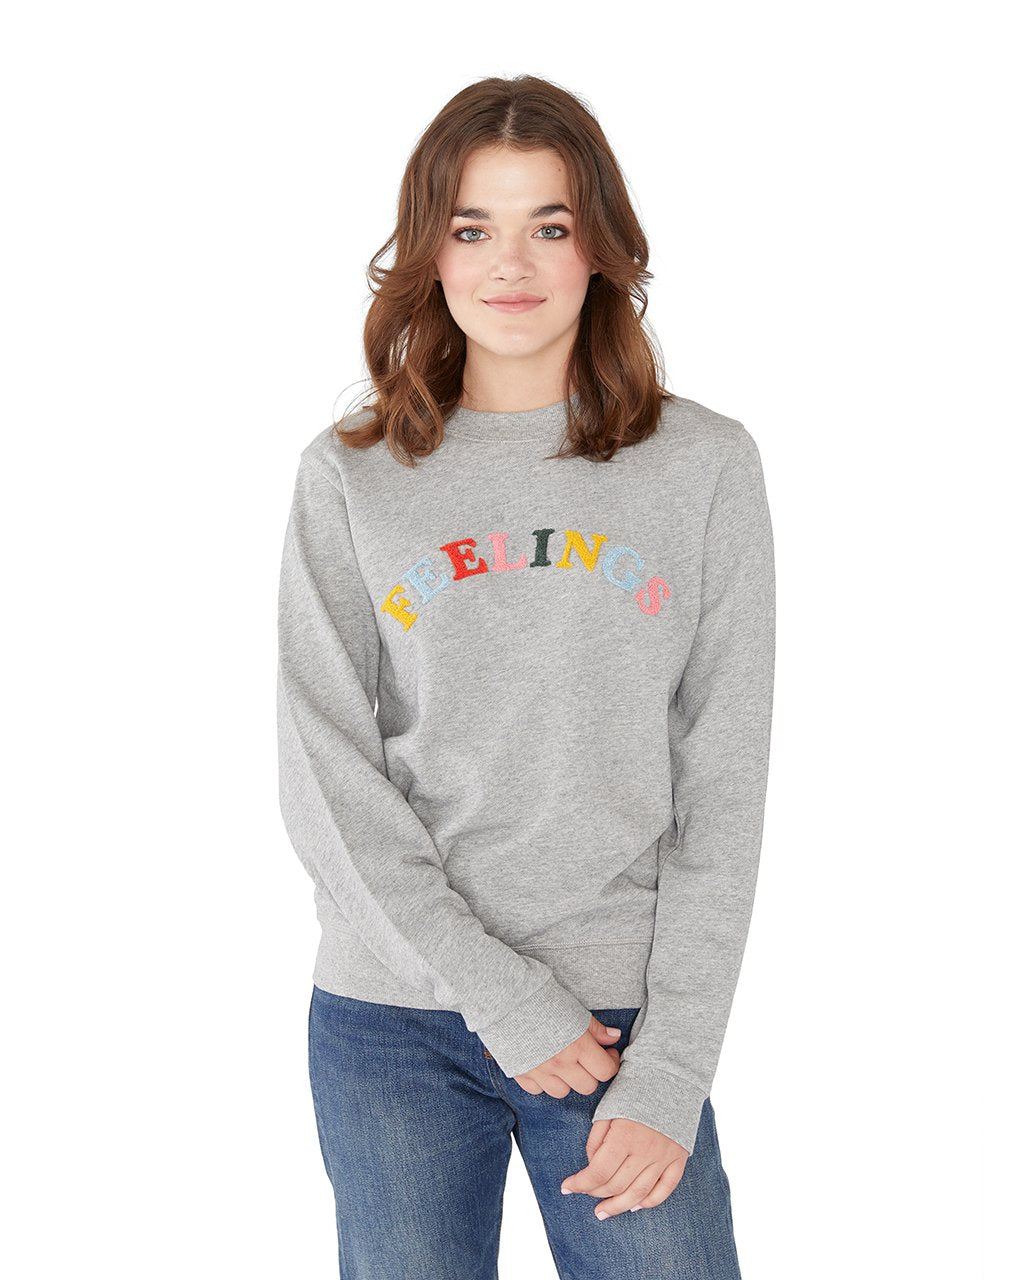 Feelings Sweatshirt